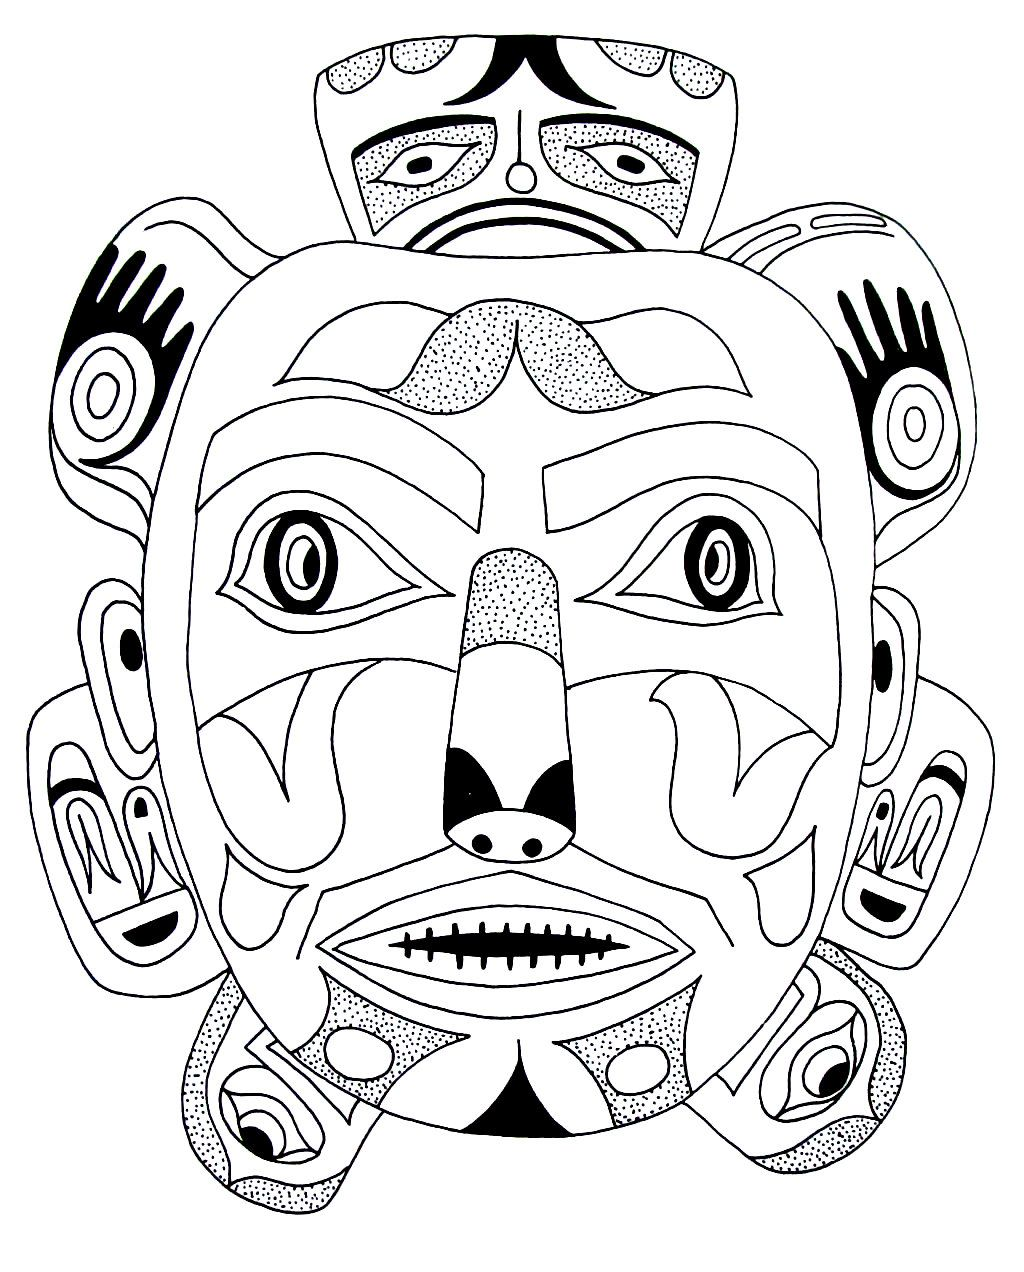 bear mask kwakiuti indian design coloring book page native